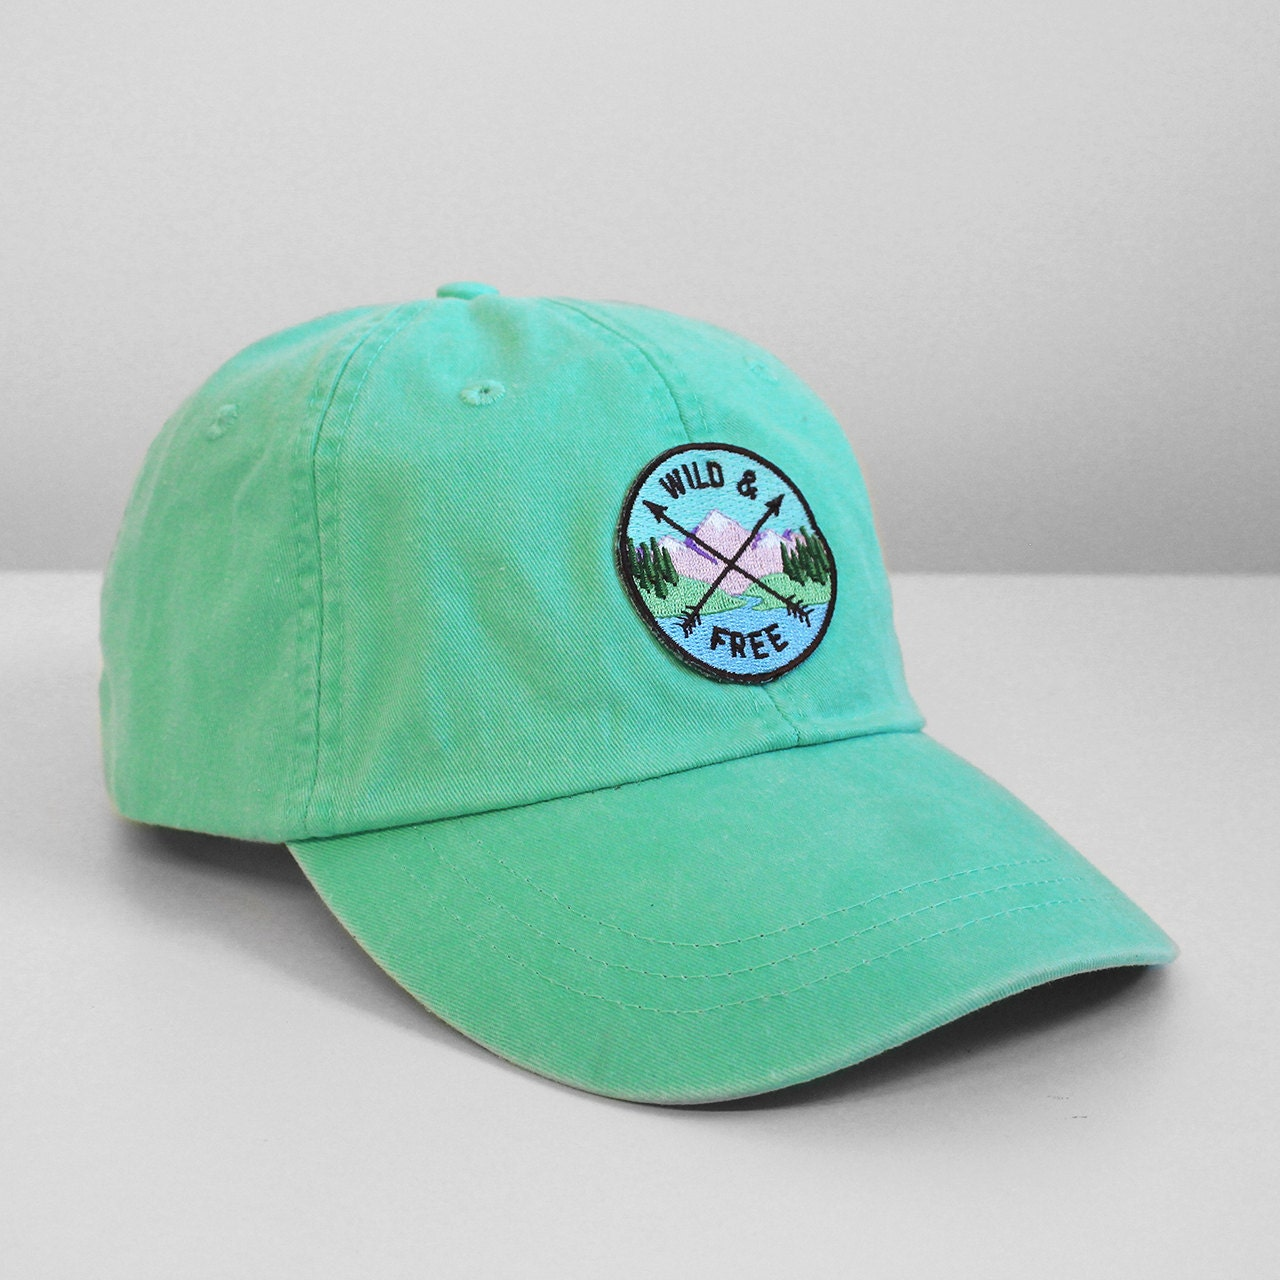 Wild free embroidered baseball hat your choice of cap